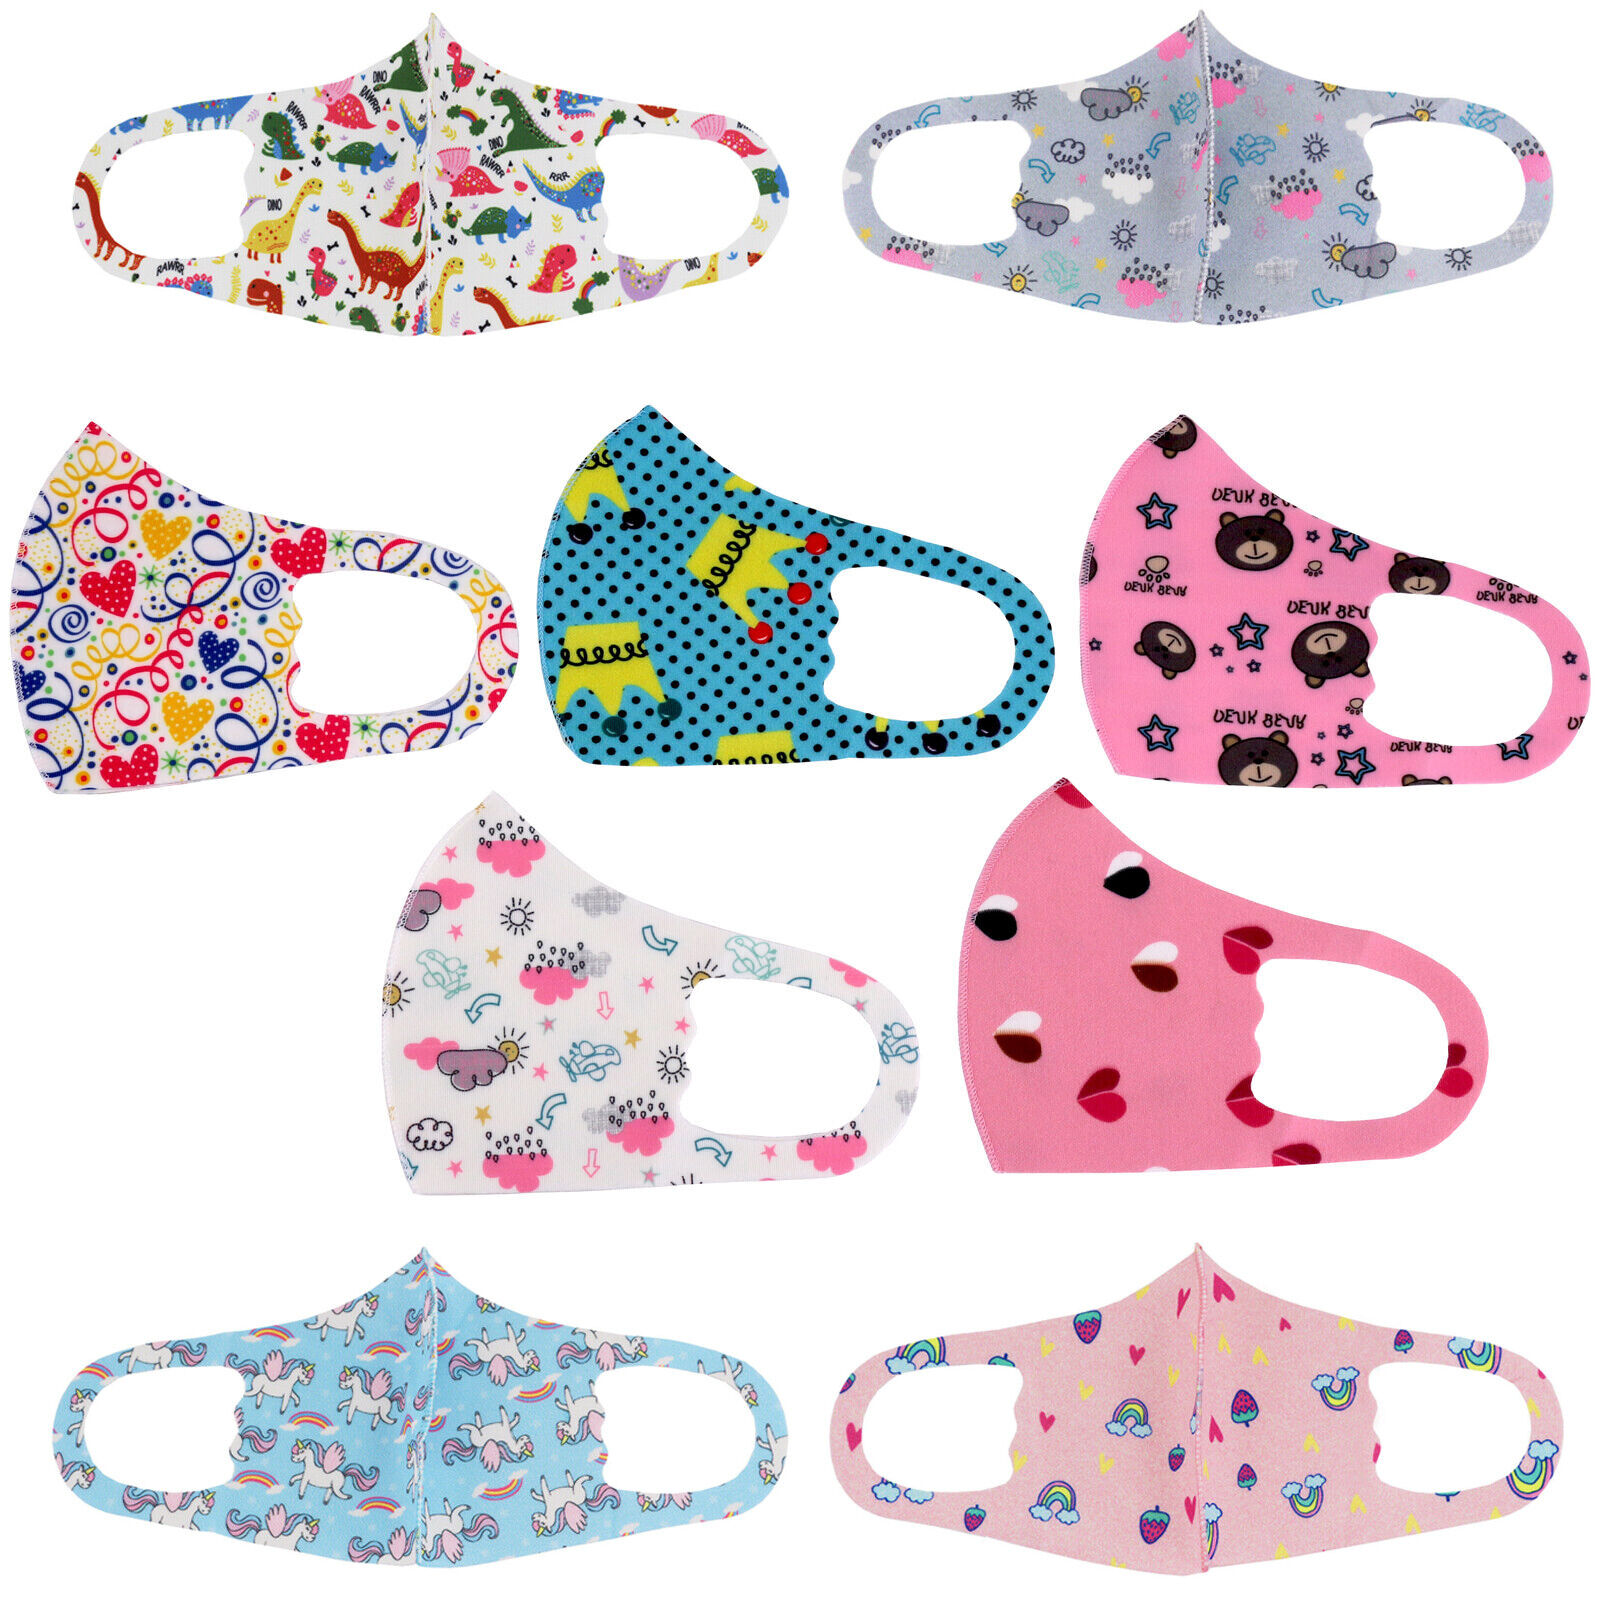 Kids Toddler Reusable Washable Cloth Face Protection Cover Stretch Handmade Mask Accessories